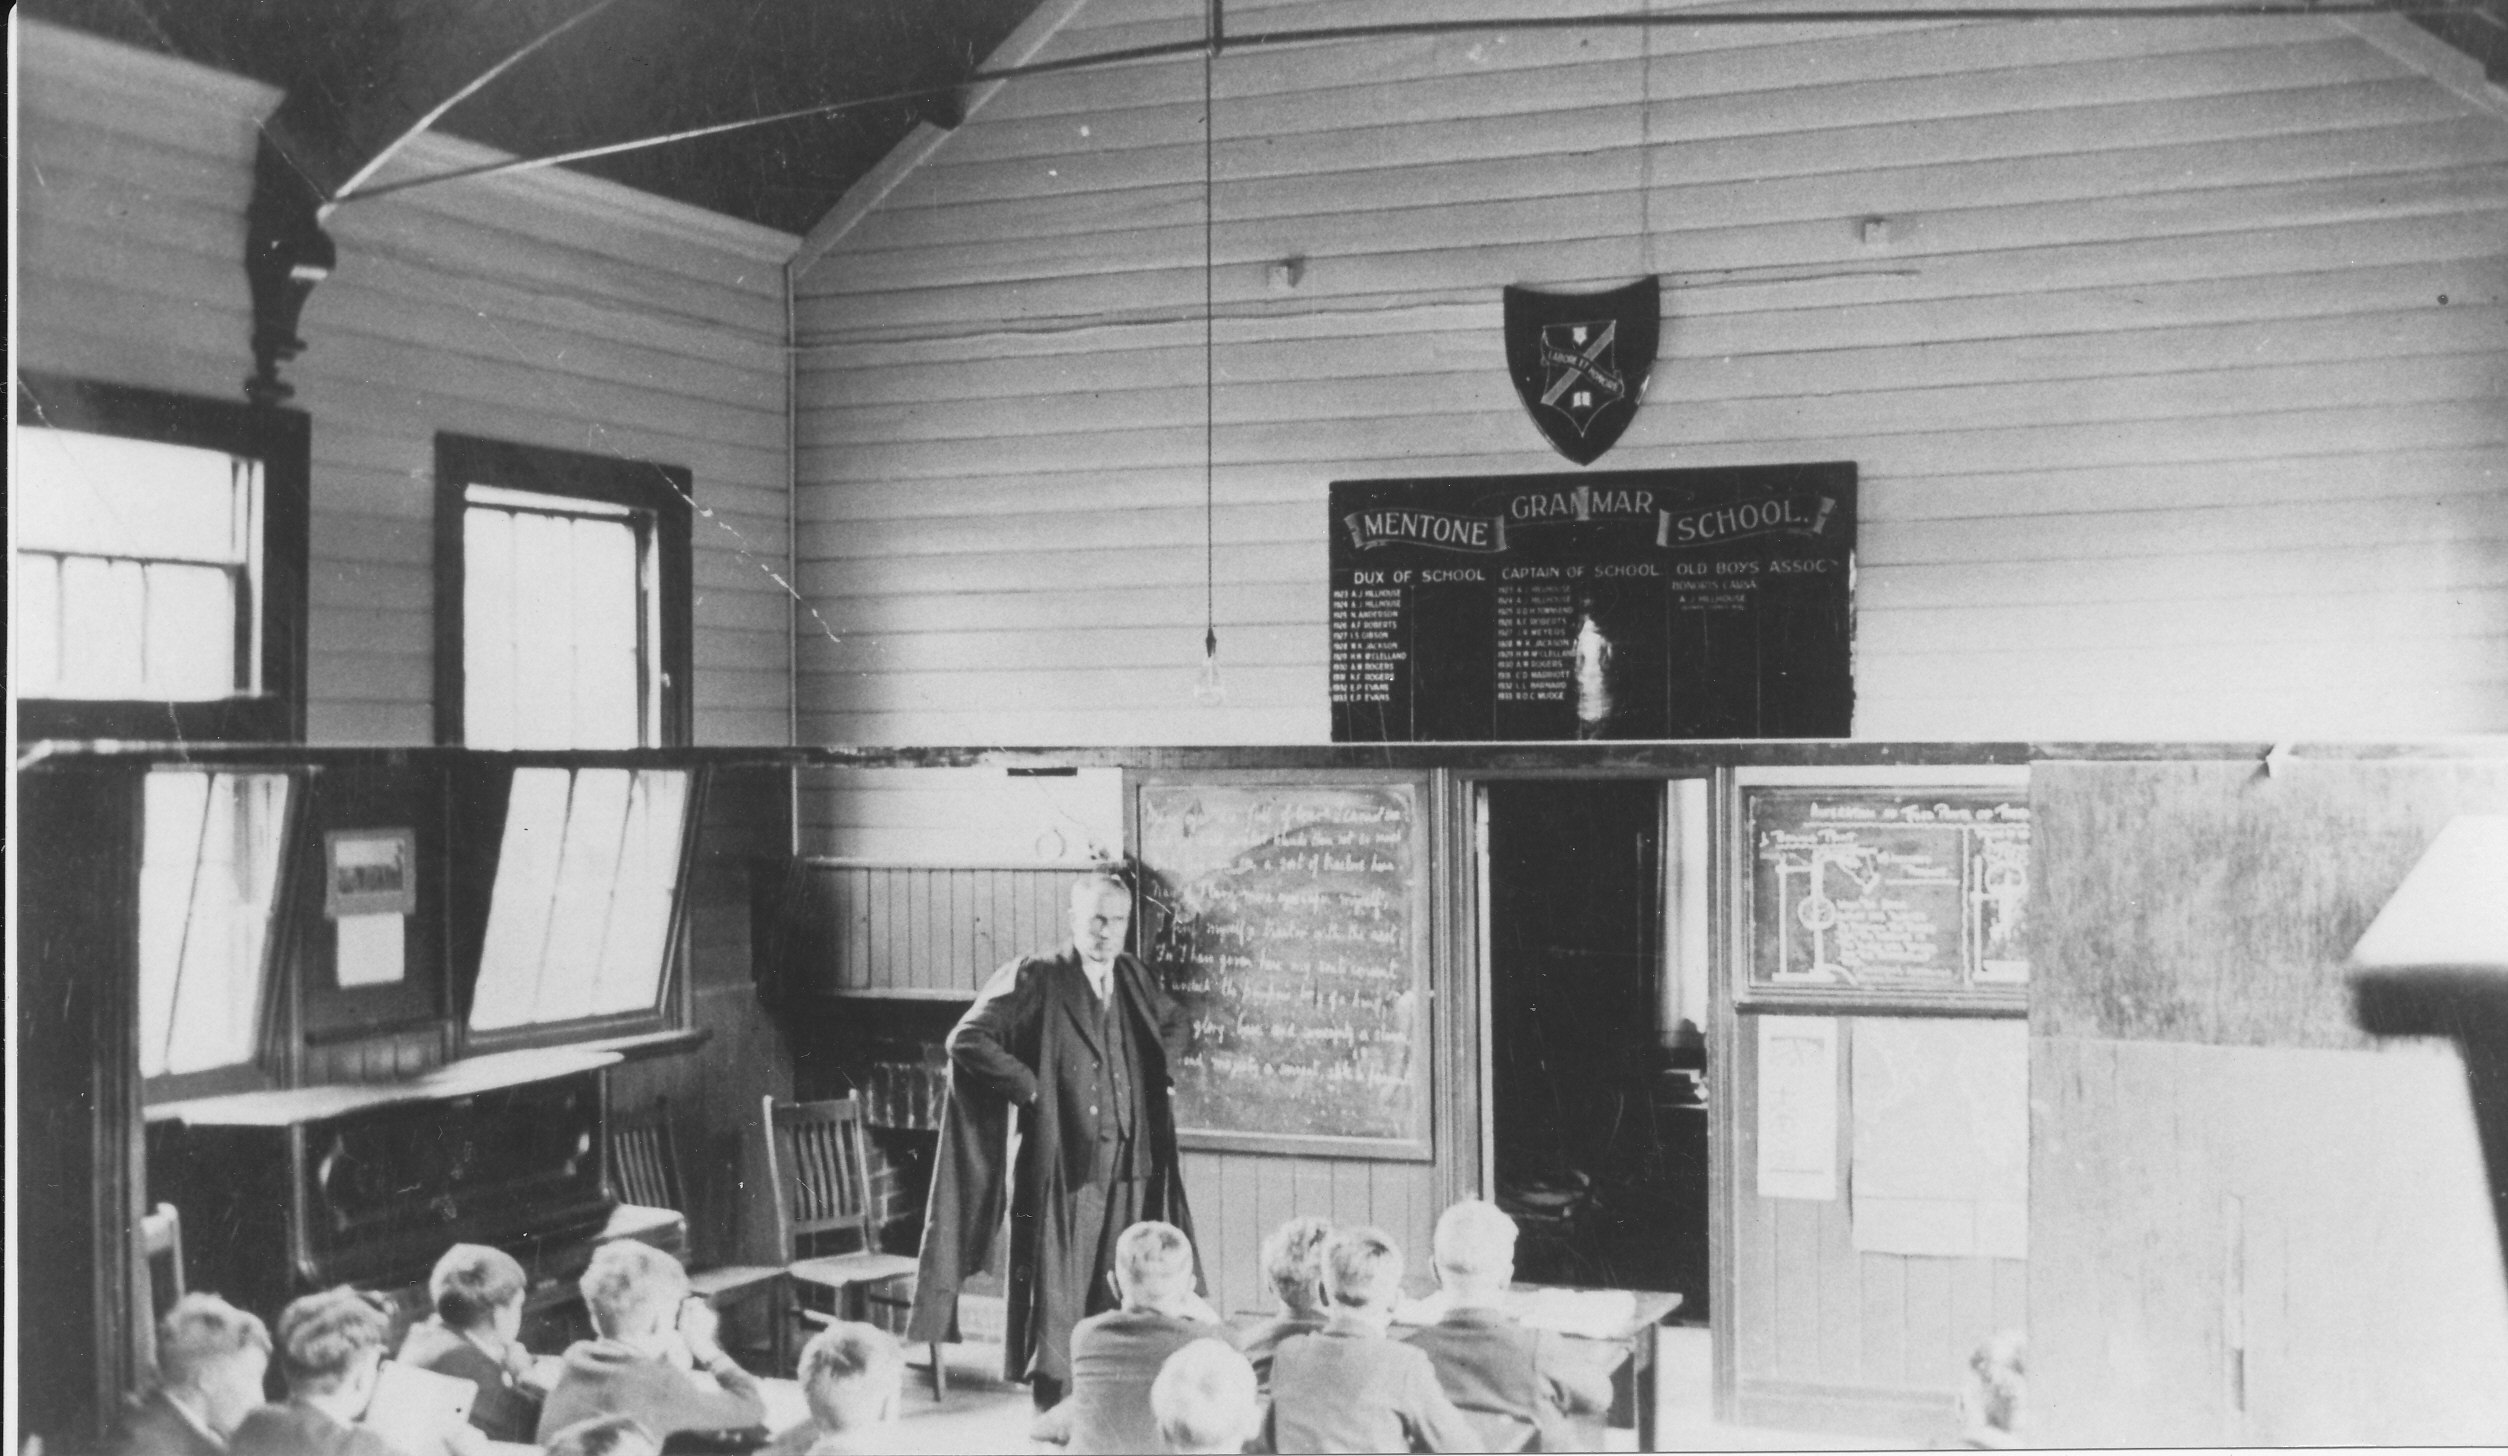 1934-C.C.Thorold-in-classroom.jpg?mtime=20170810000633#asset:587